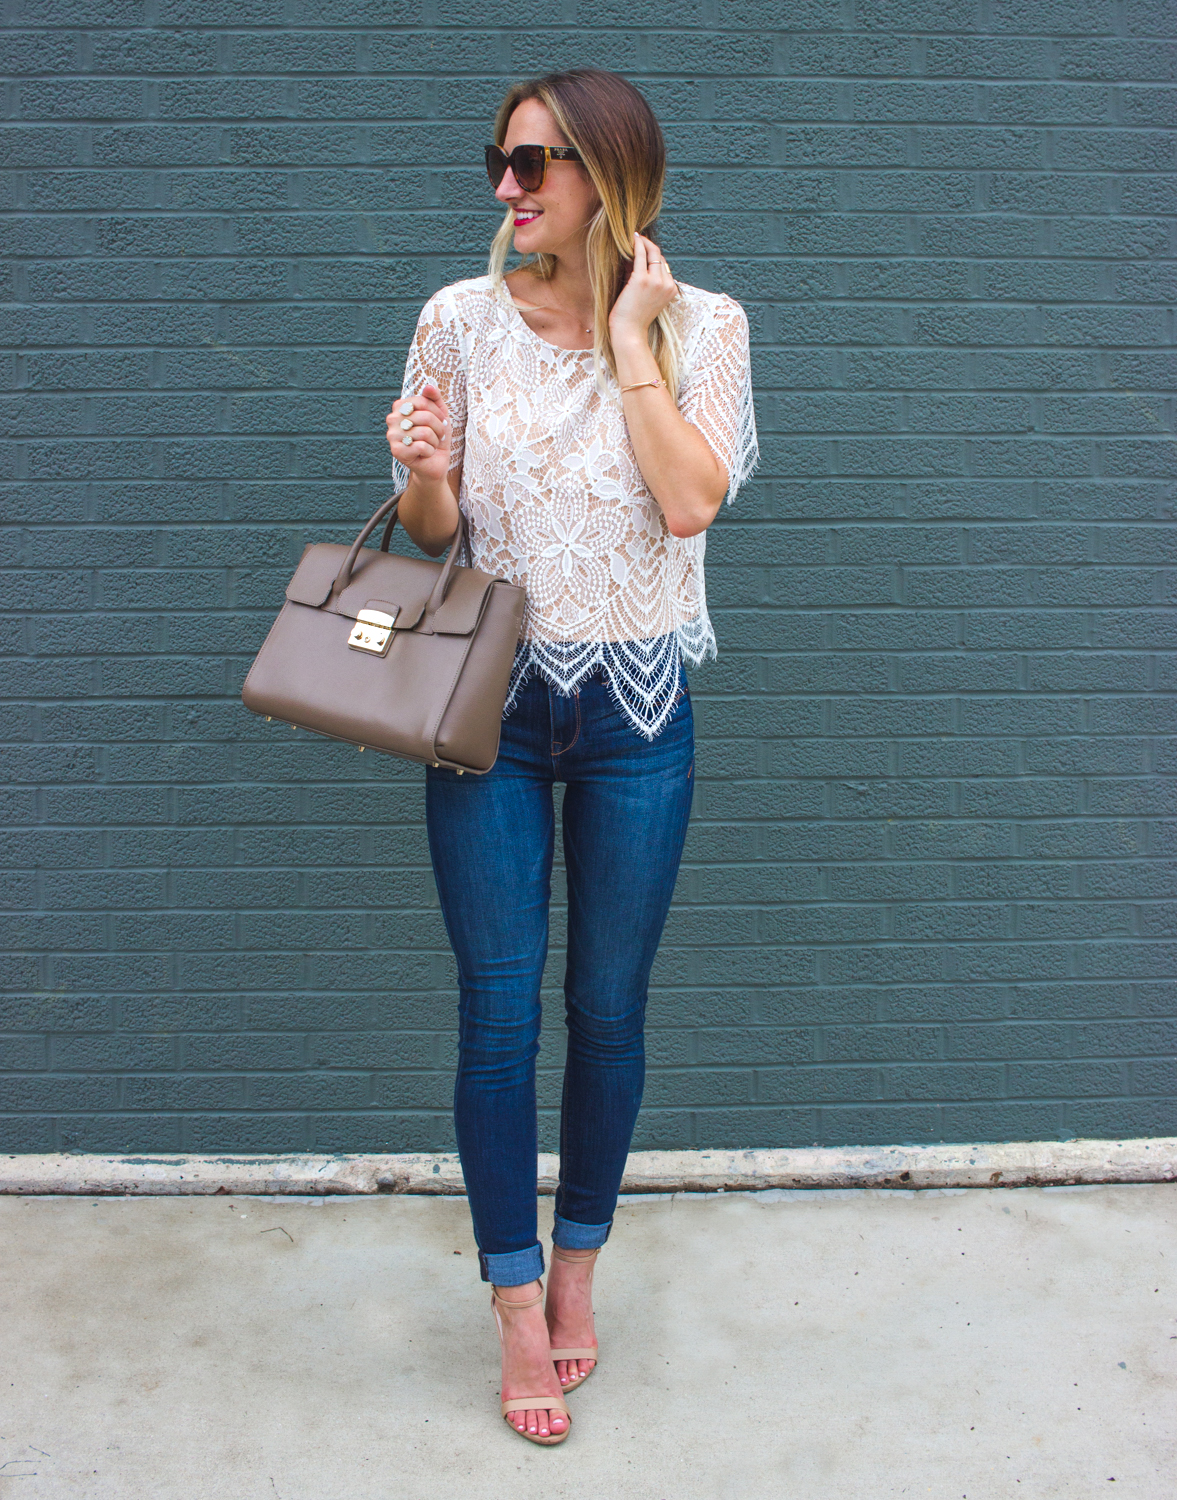 livvyland-blog-olivia-watson-date-night-express-skinny-jeans-lace-overlay-top-1